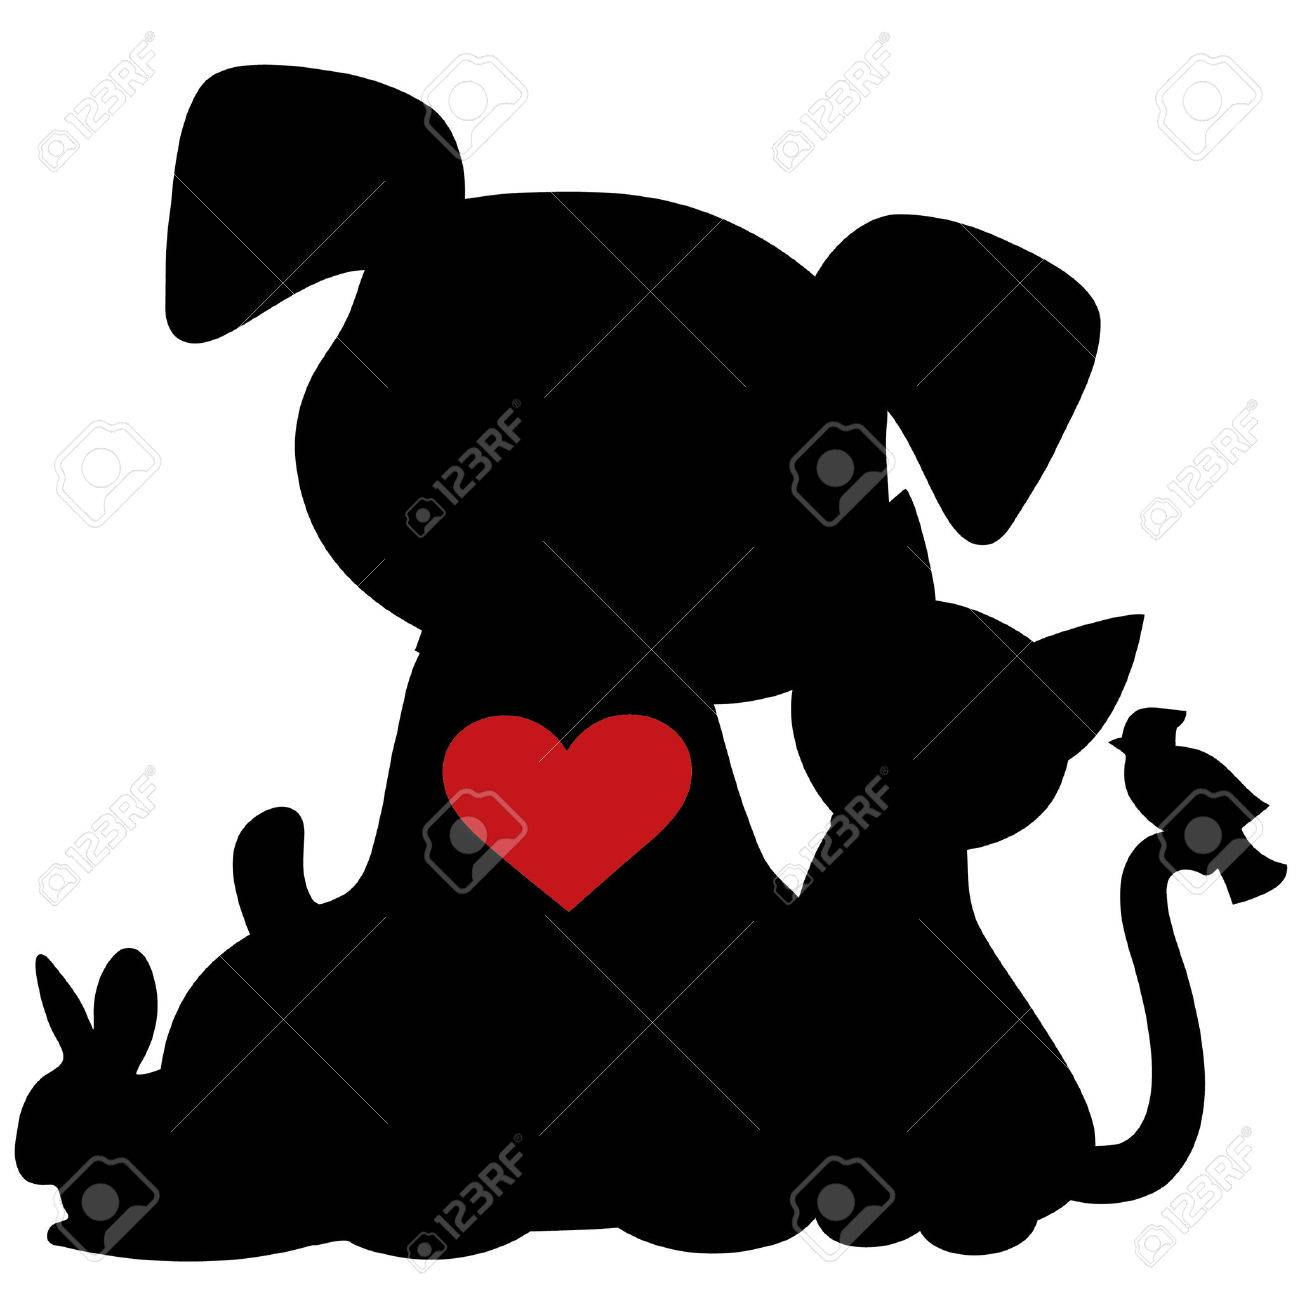 1300x1300 Dog Cat Silhouette Stock Photos. Royalty Free Dog Cat Silhouette